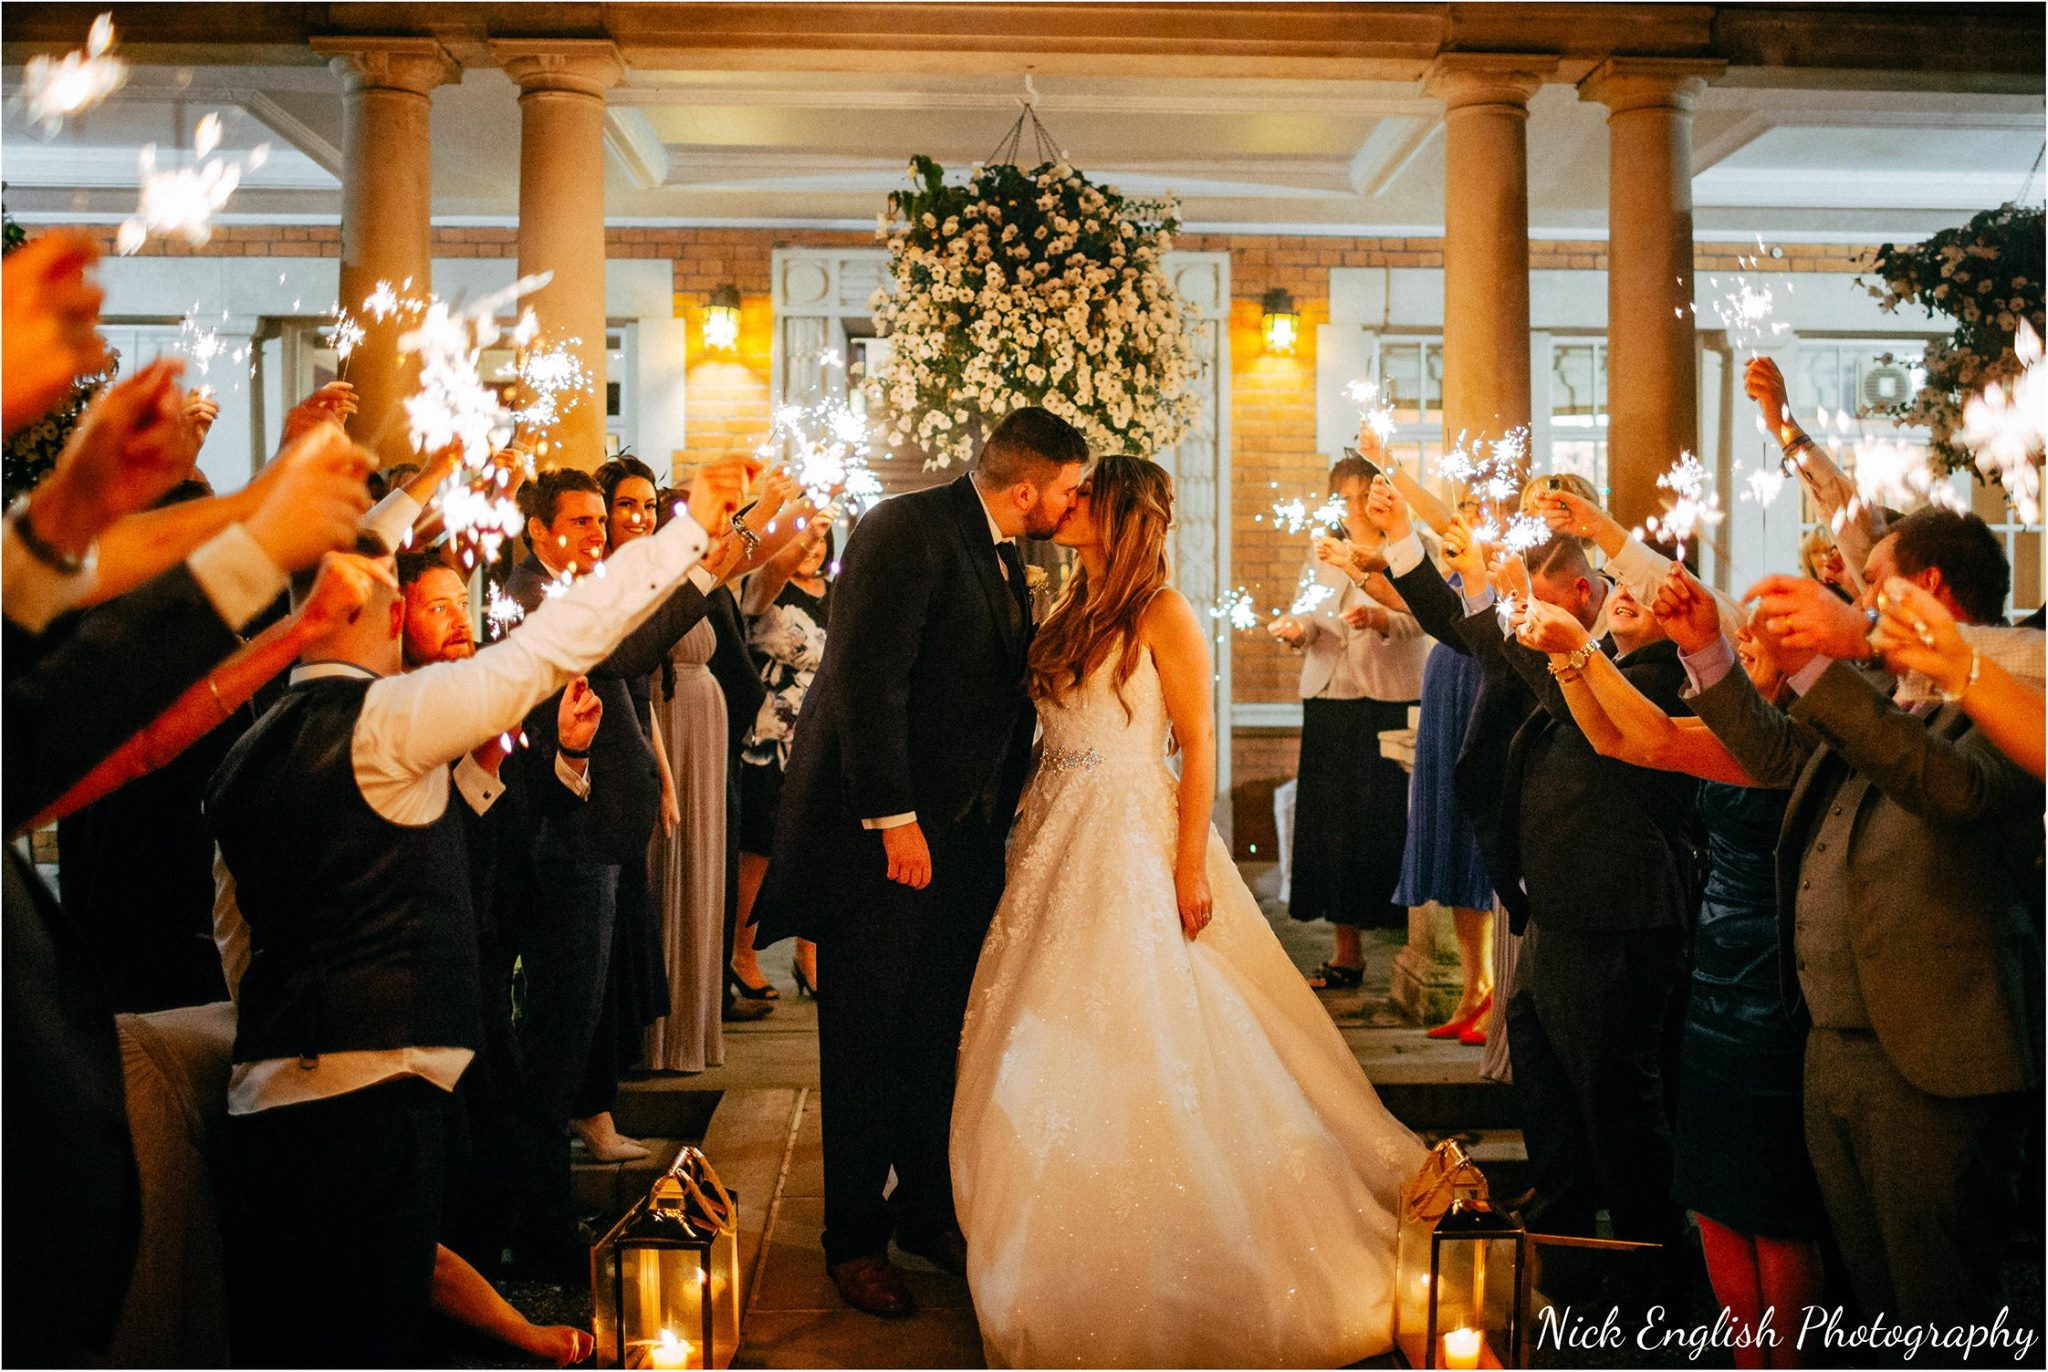 Canon 5D3 + 35L @ f1.4, 1/400th, ISO 3200 (could have used a lower ISO here, but uncertainty towards what the bride and groom would do (walk slow / walk fast / stop / kiss / laugh etc) made me pick a fast enough re-active shutter speed - therefore higher ISO